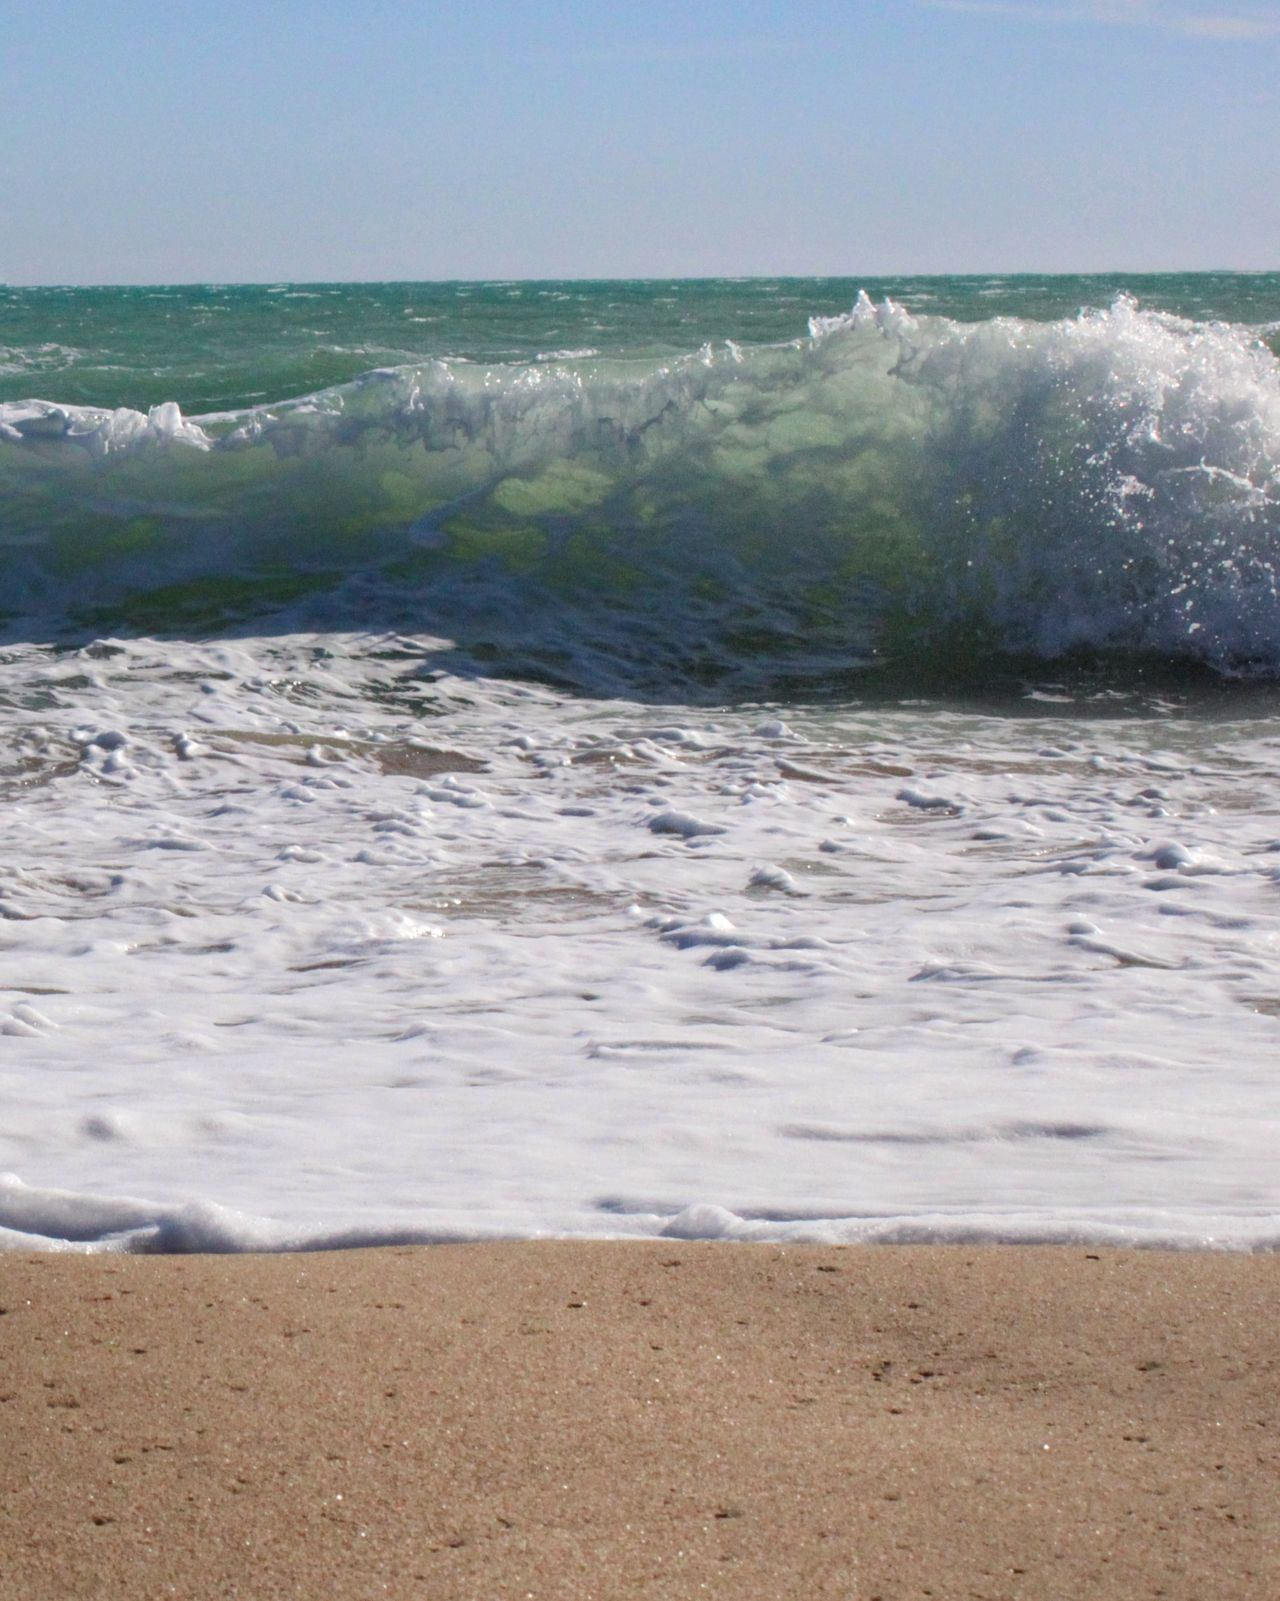 Beach Water Sand Sea Wave Nature No People Horizon Over Water Outdoors Beauty In Nature Blue Day Travel Destinations Scenics Sky Water Surface Nature_collection Sicily Landscape Beauty In Nature Wave Sunlight Power In Nature Freshness